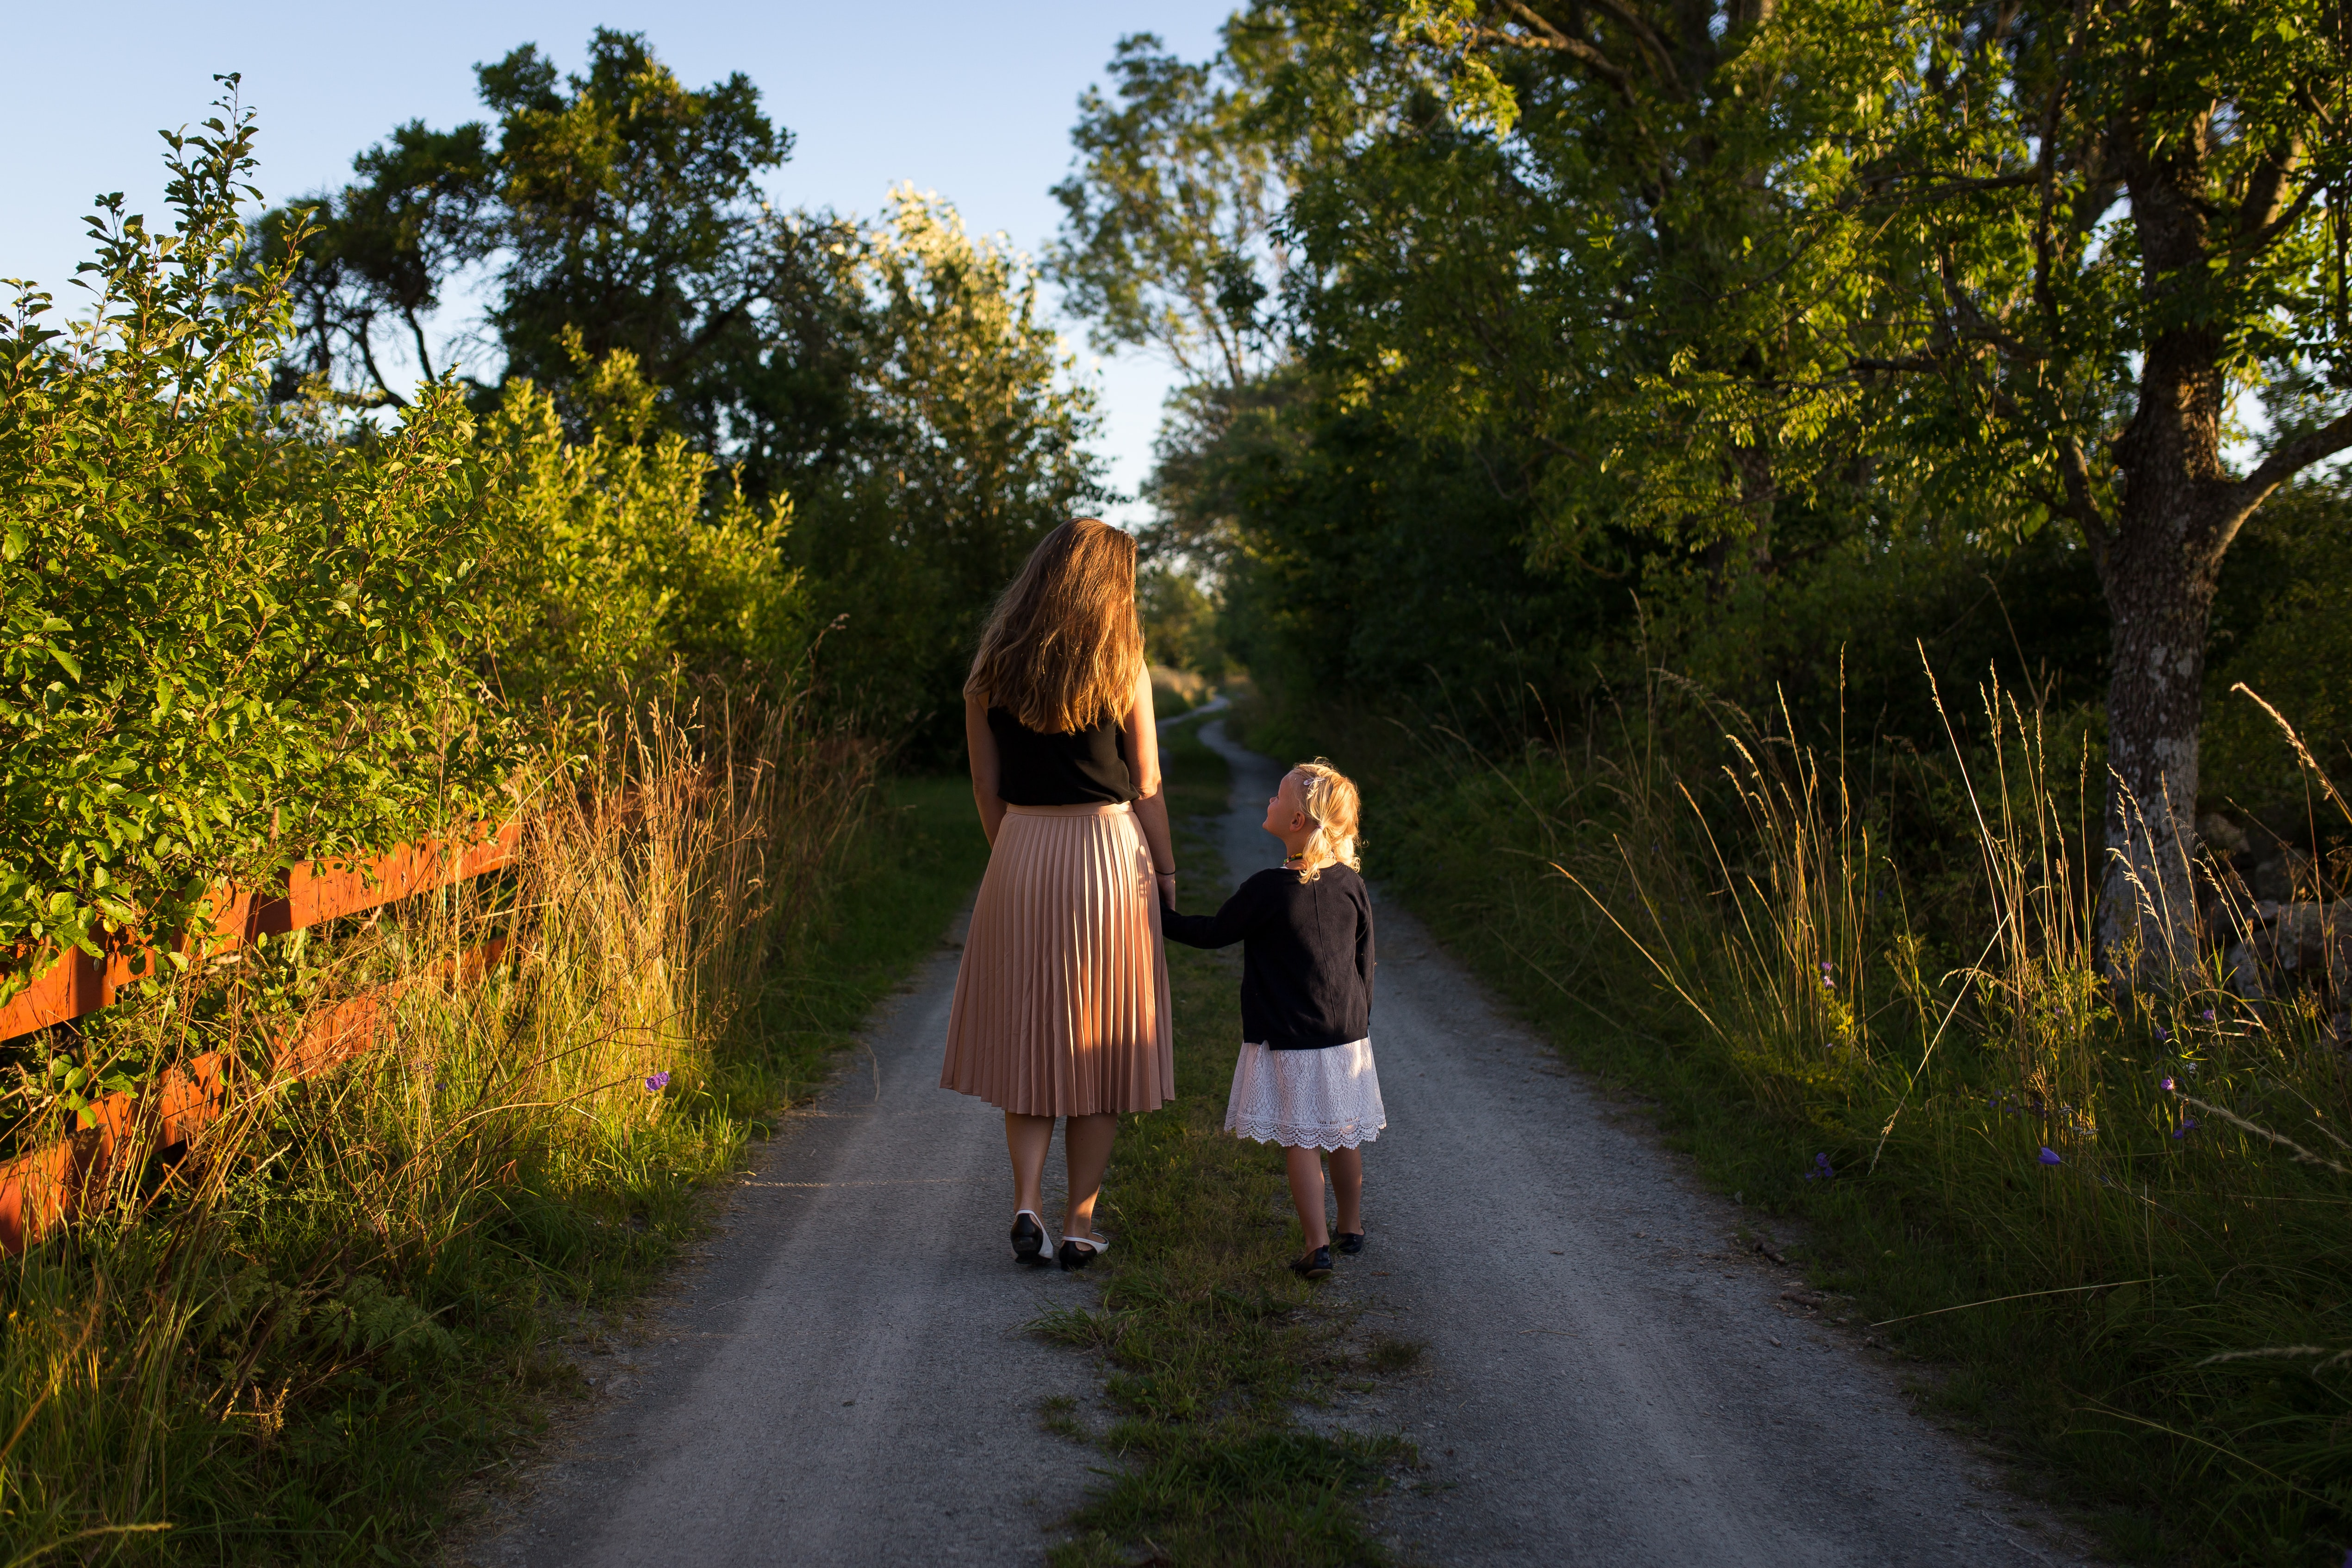 Child and mother walk through park trail as shadows lengthen